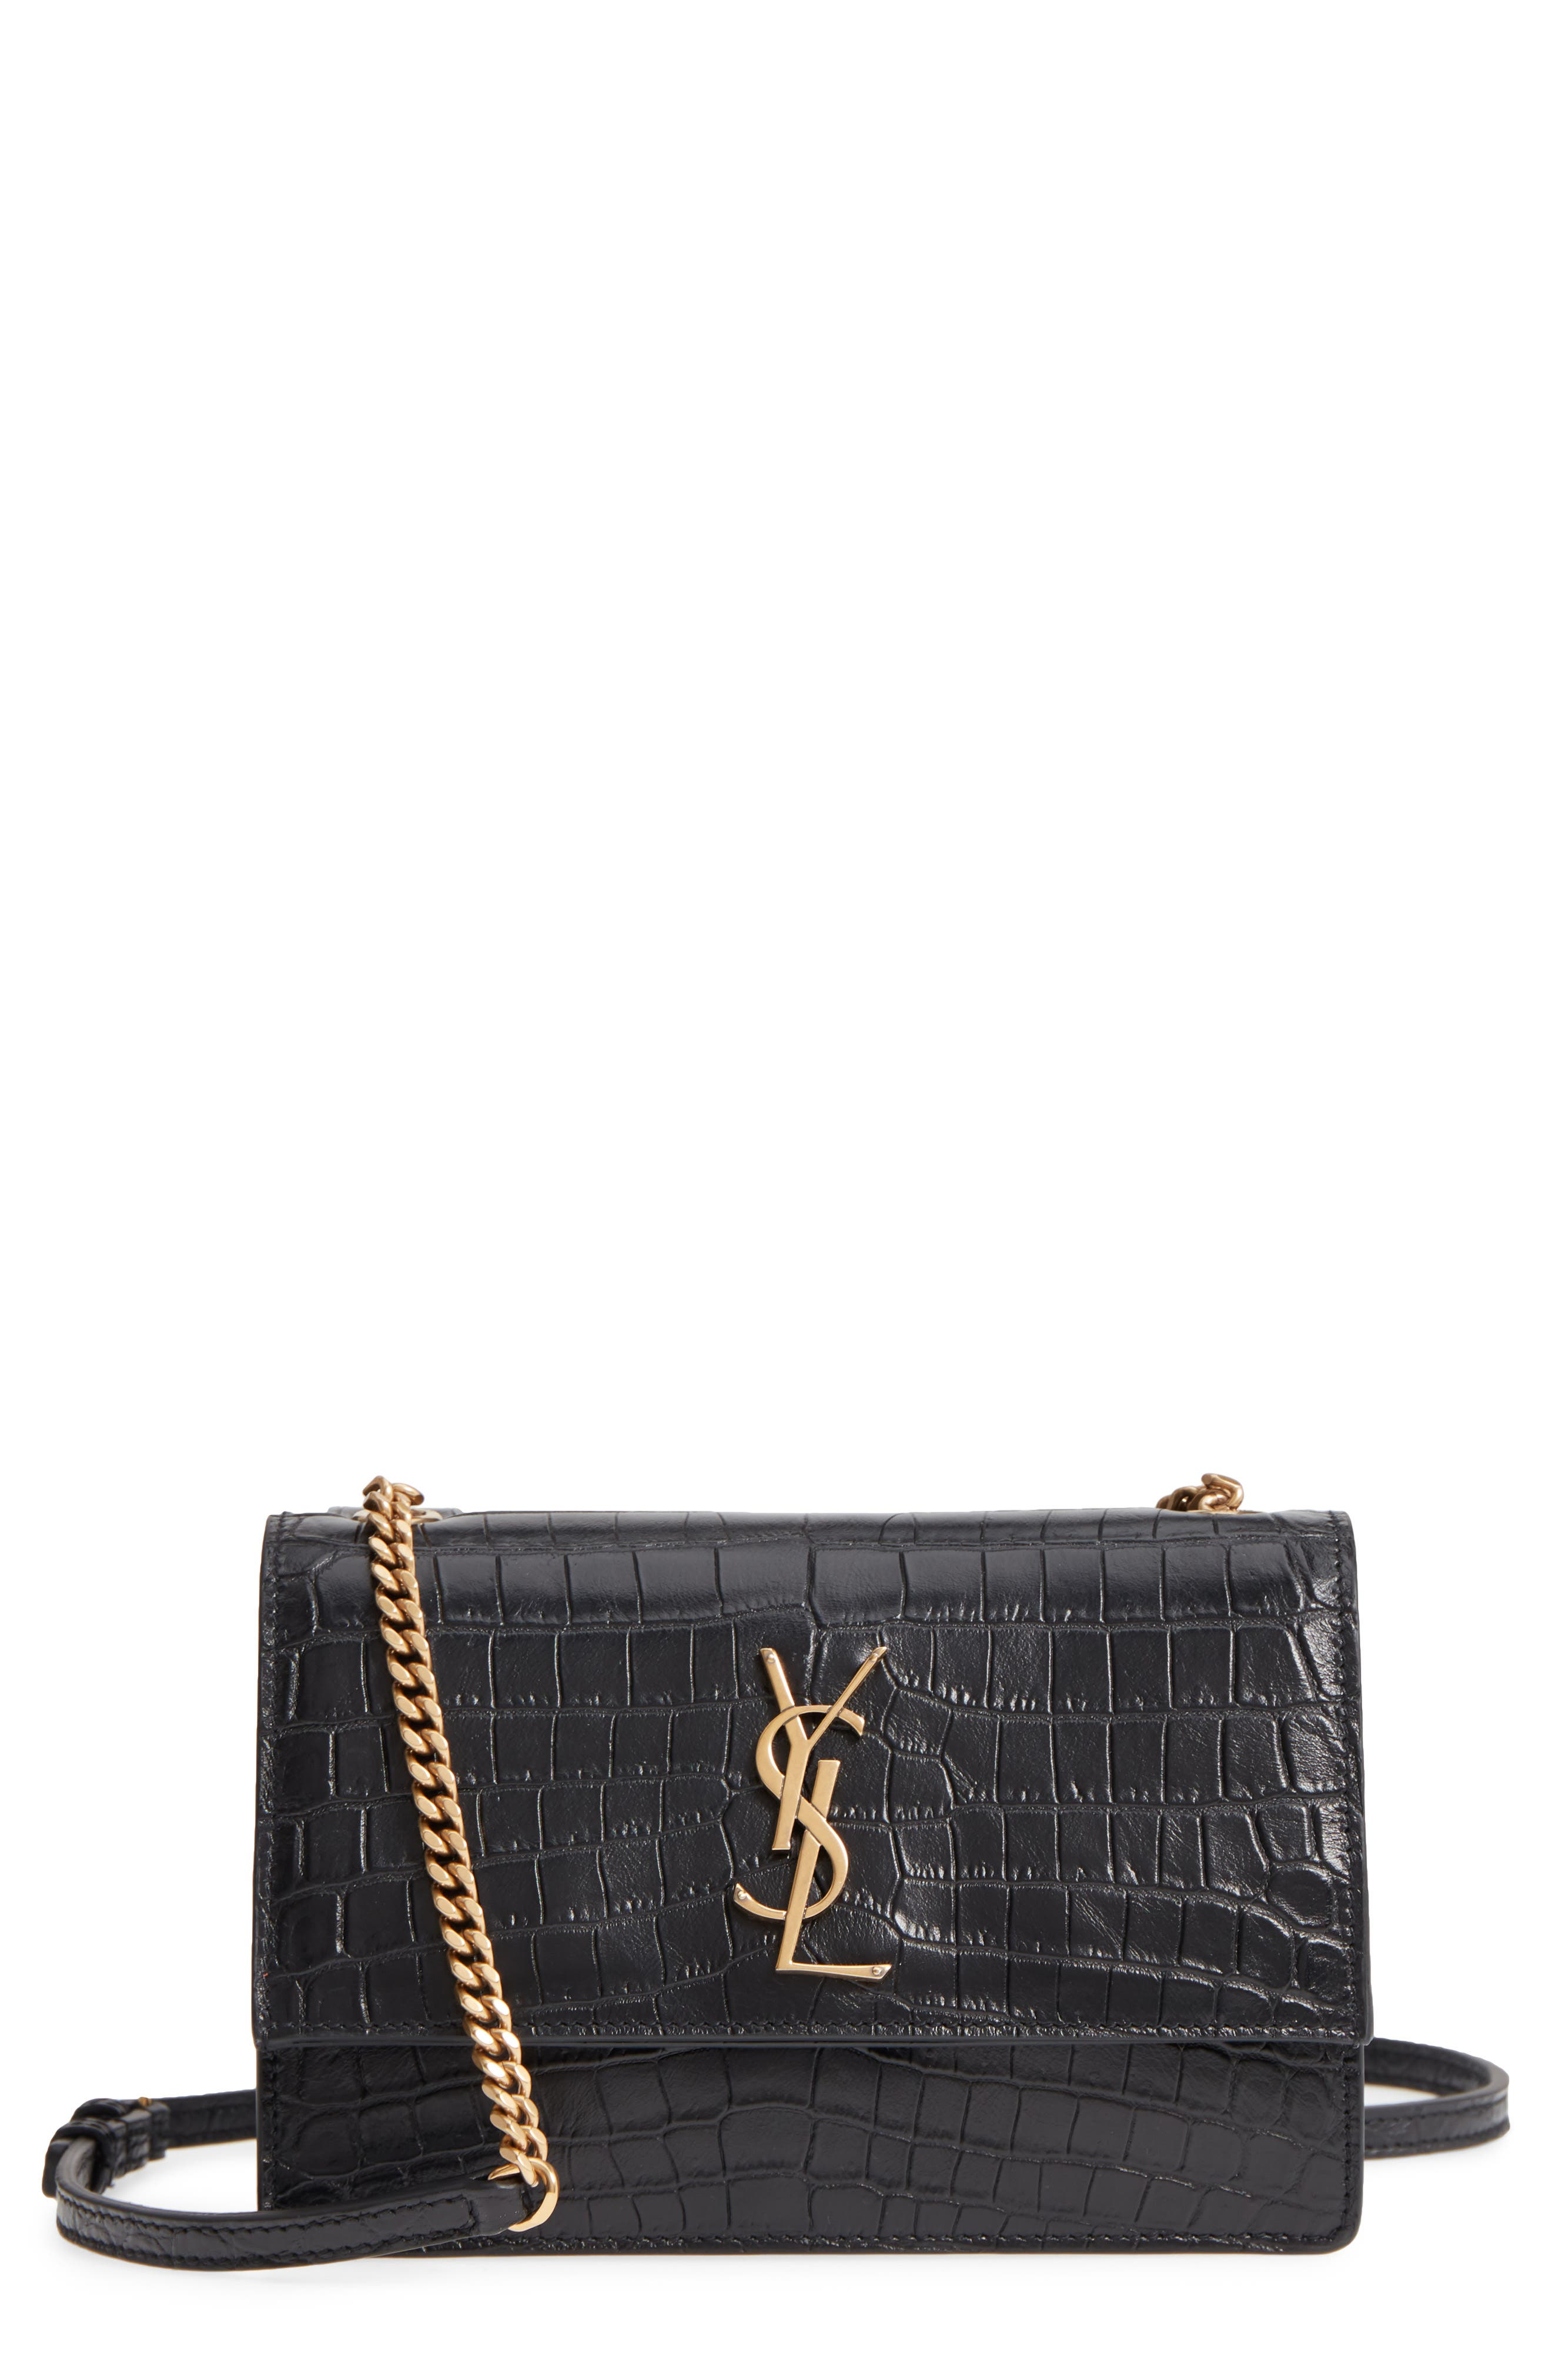 Small Sunset Croc Embossed Leather Shoulder Bag,                         Main,                         color, NERO